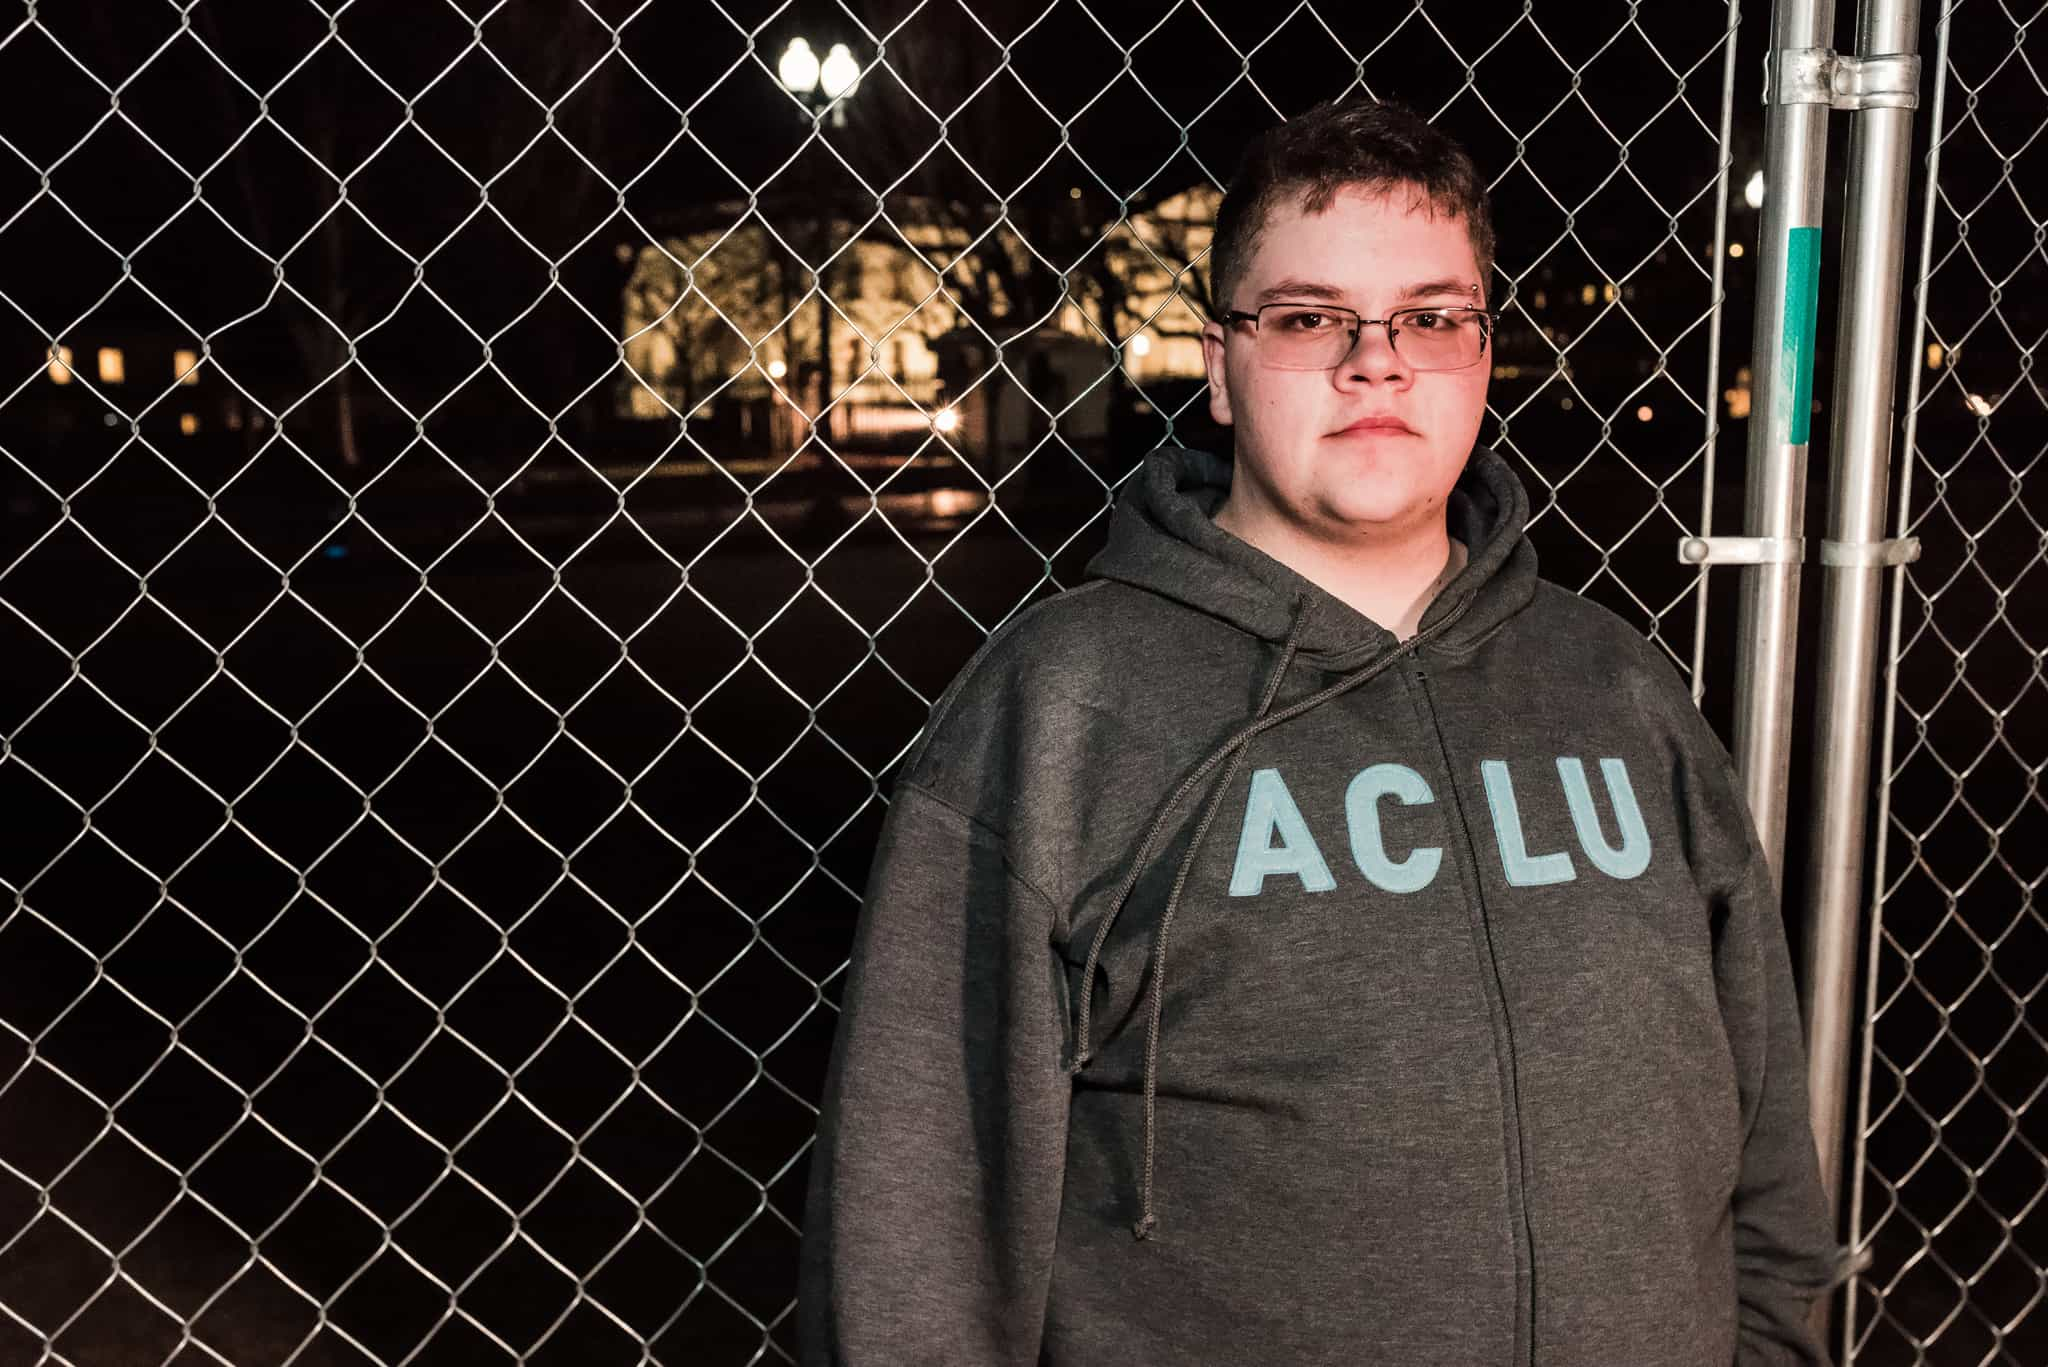 Supreme Court plaintiff and LGBT rights advocate Gavin Grimm.